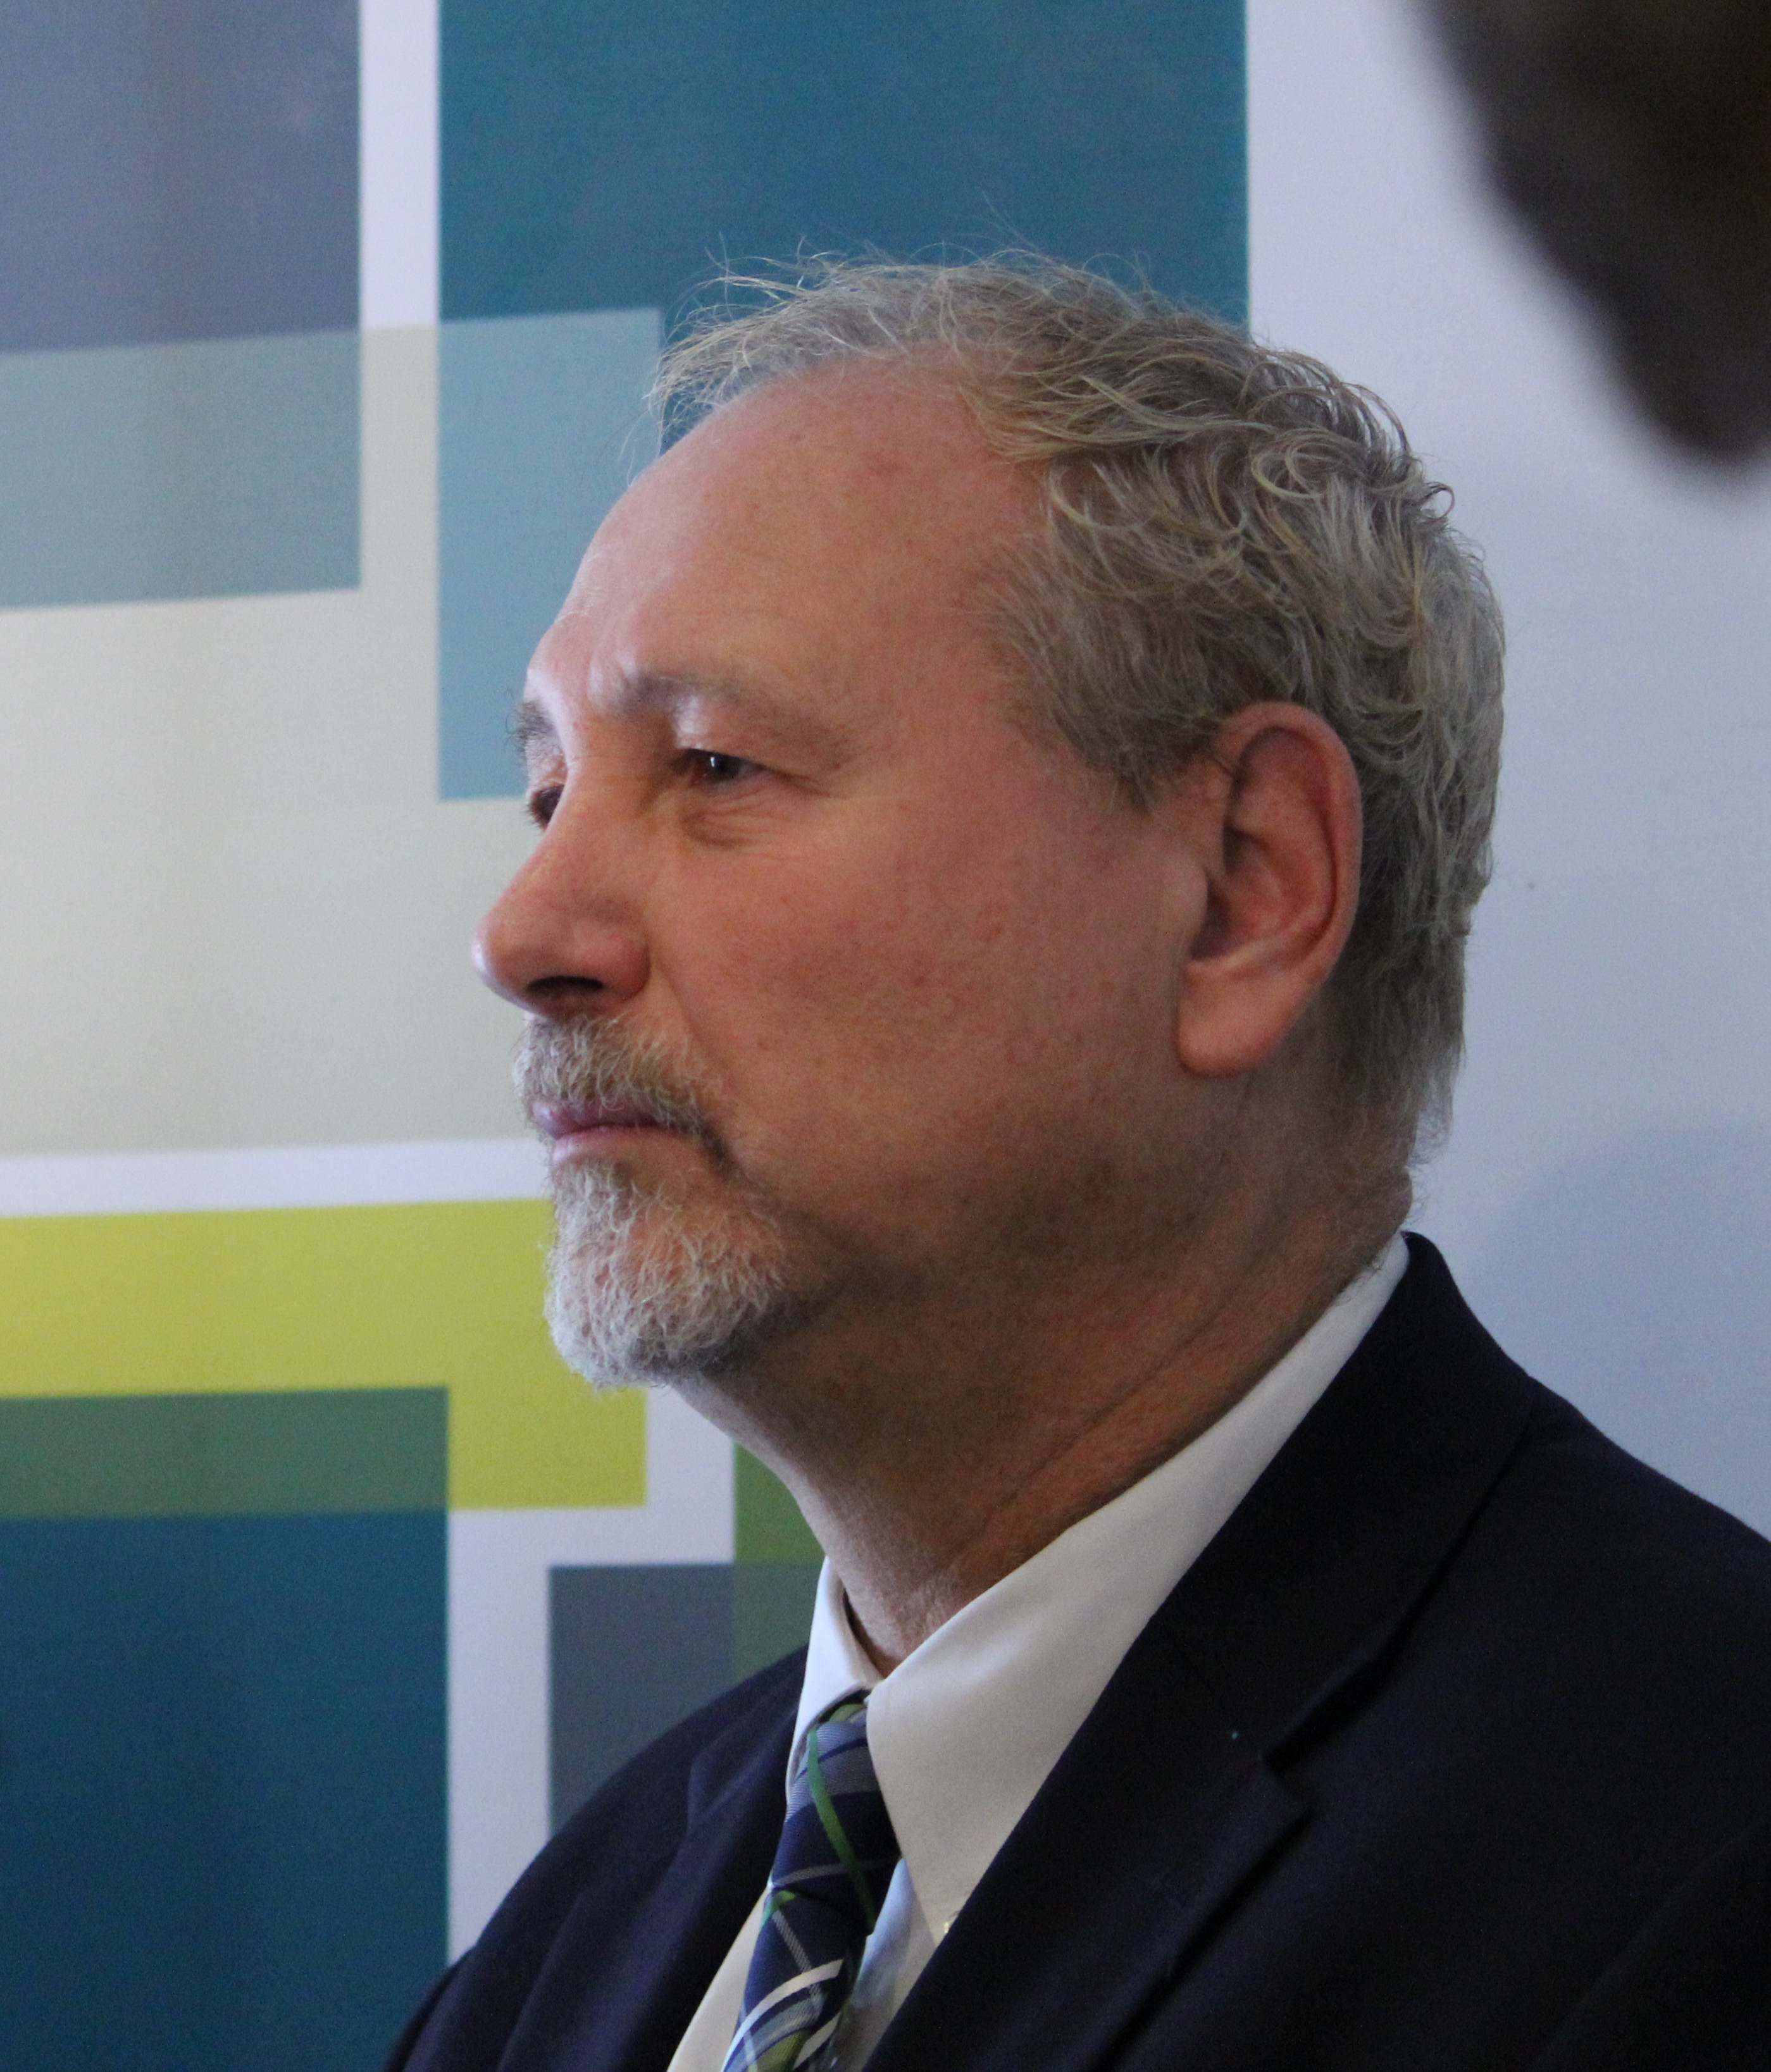 DWBIA Chair Larry Horwitz speaks to reporters on October 2, 2015. (photo by Alexandra Latremouille)